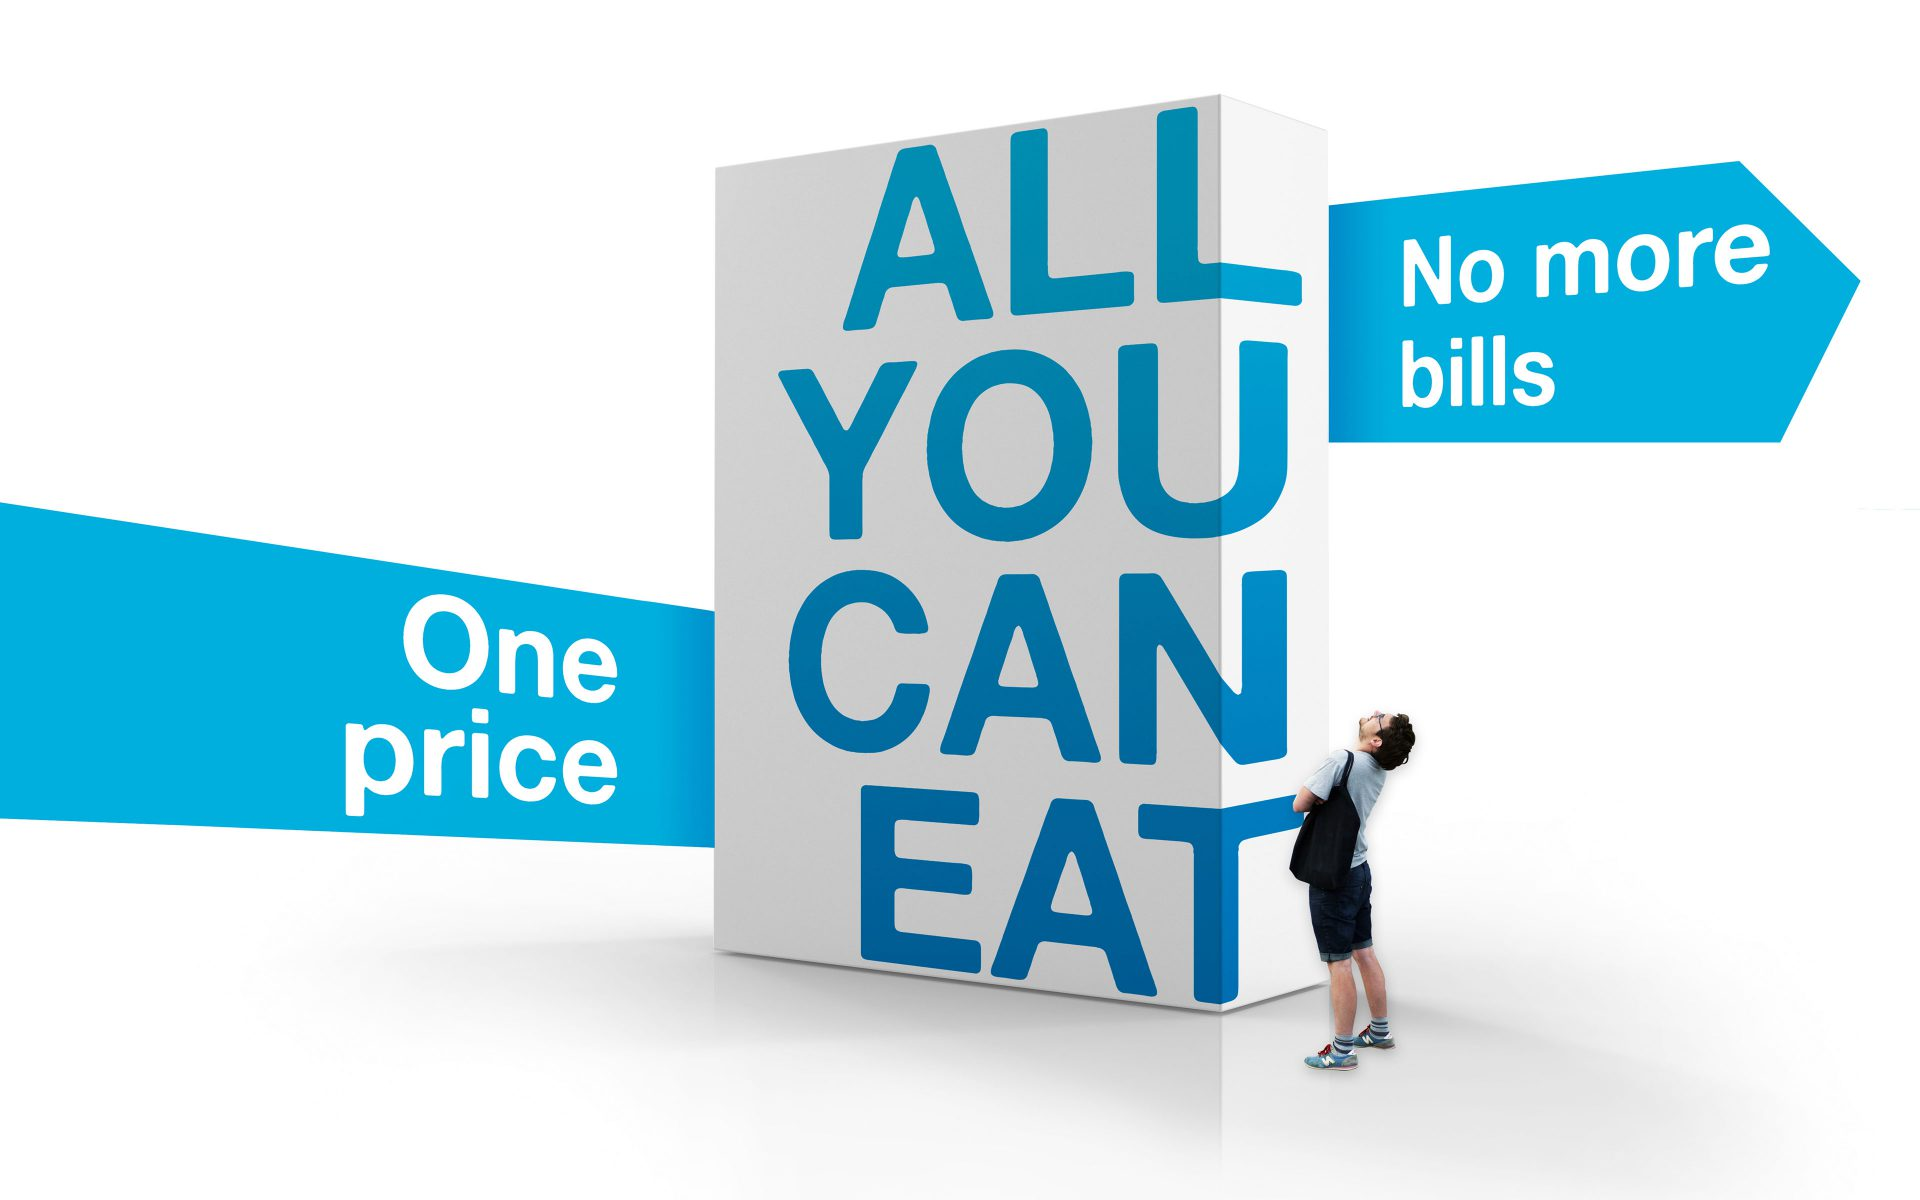 Sumo all you can eat campaign visual by Differ brand agency